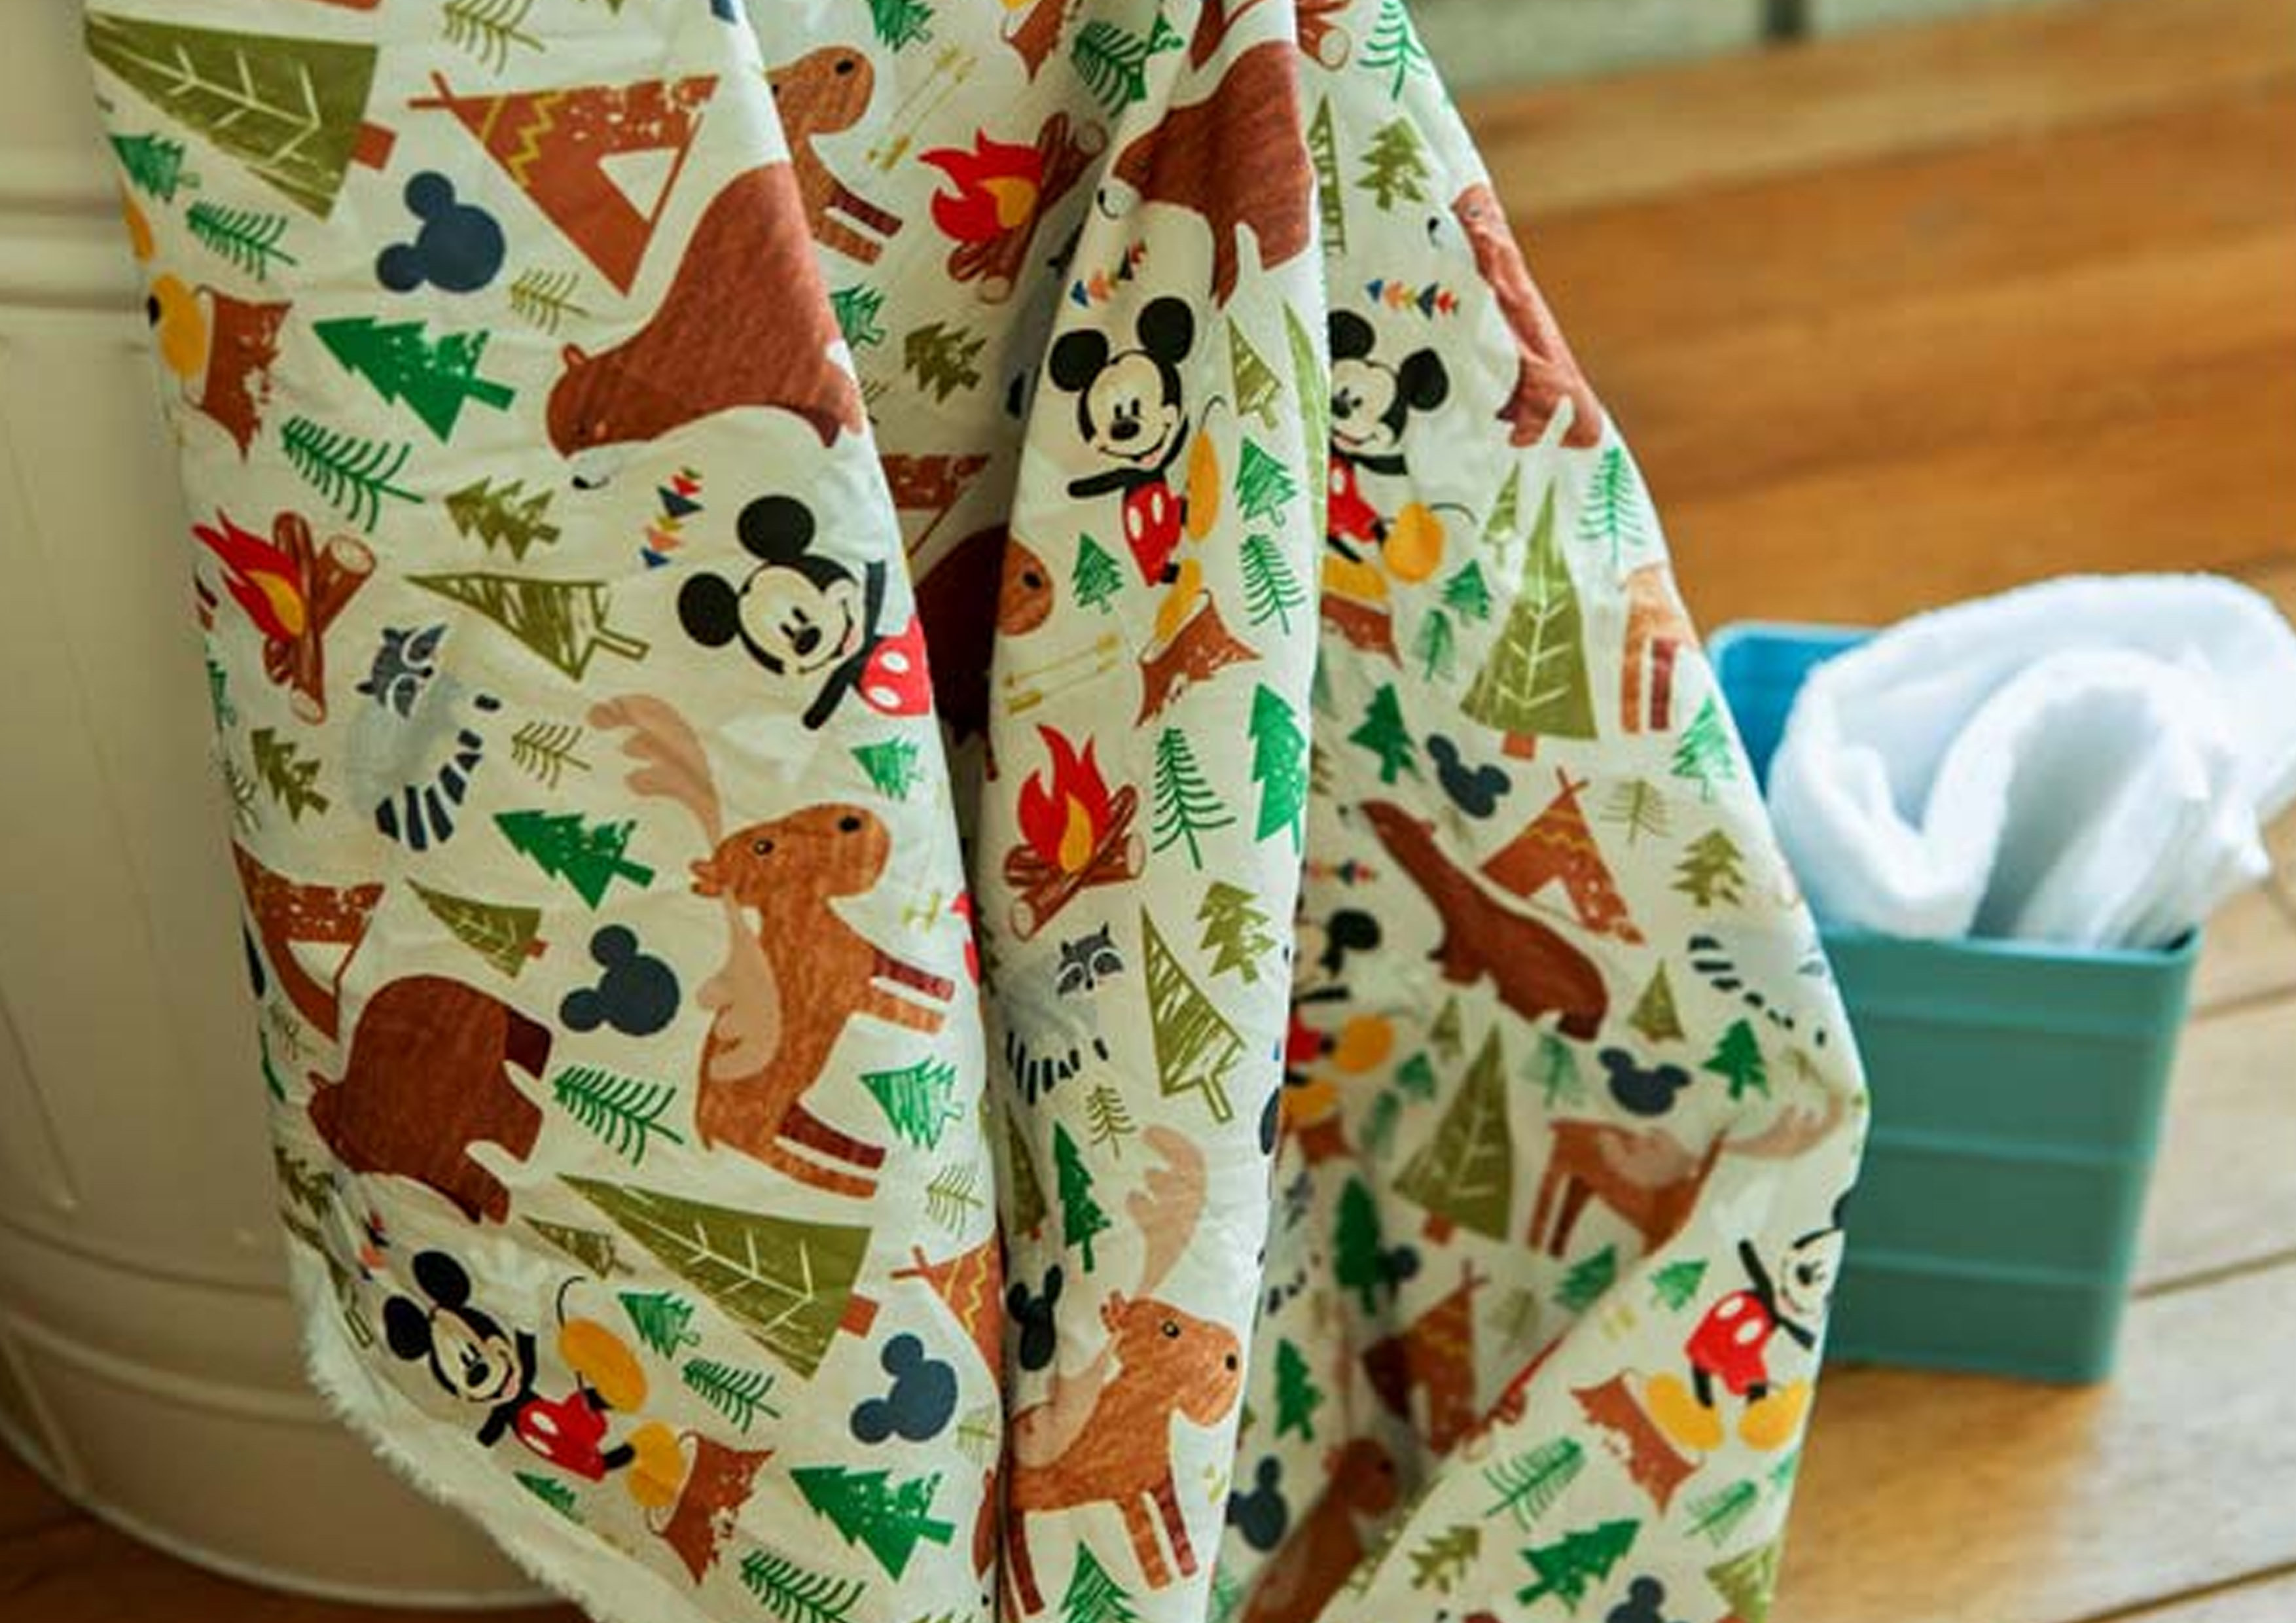 Disney Christmas Fabric By The Yard.Disney Mickey Mouse 100 Cotton Fabric By The Yard Camping Forest Bear Jc9 16